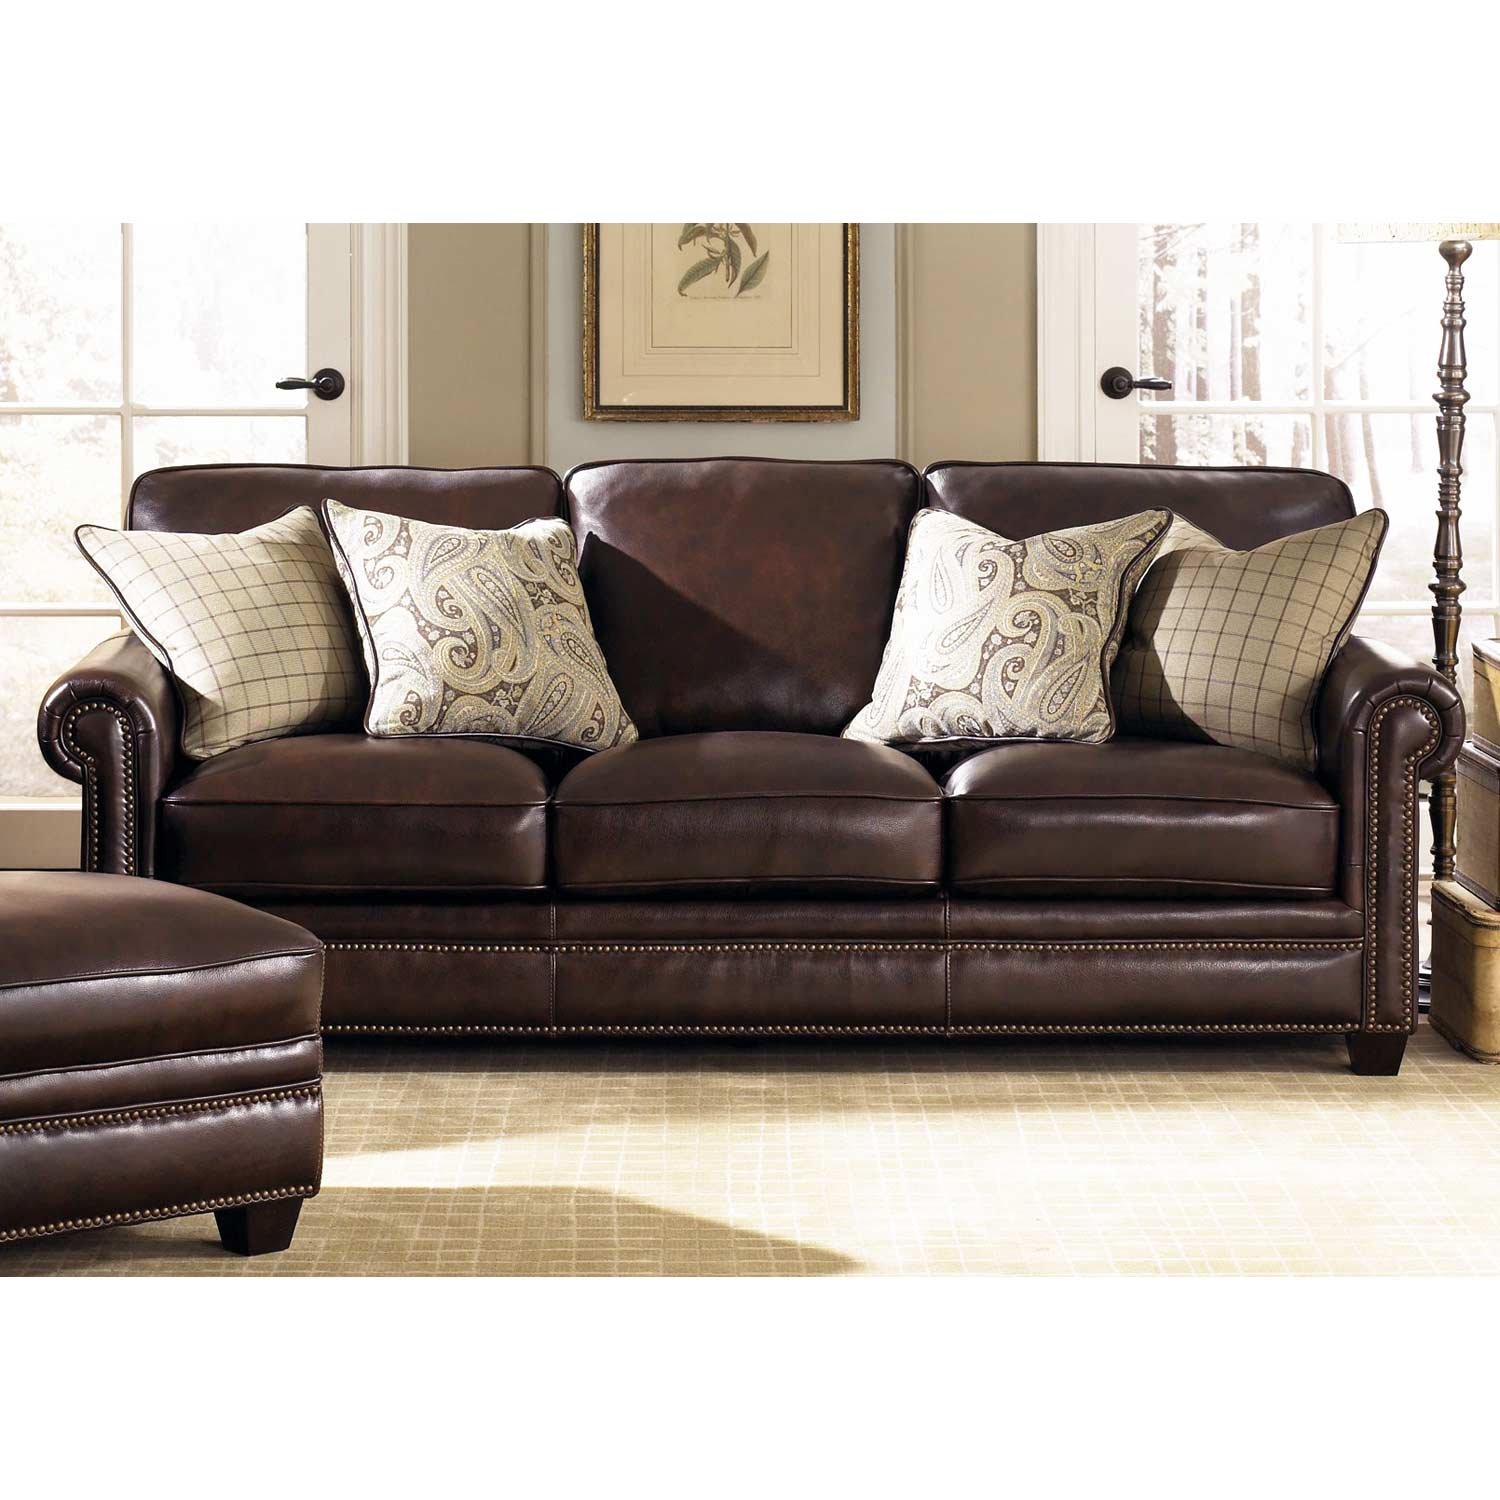 Lamesa traditional leather sofa rolled arms stampede for Traditional leather furniture